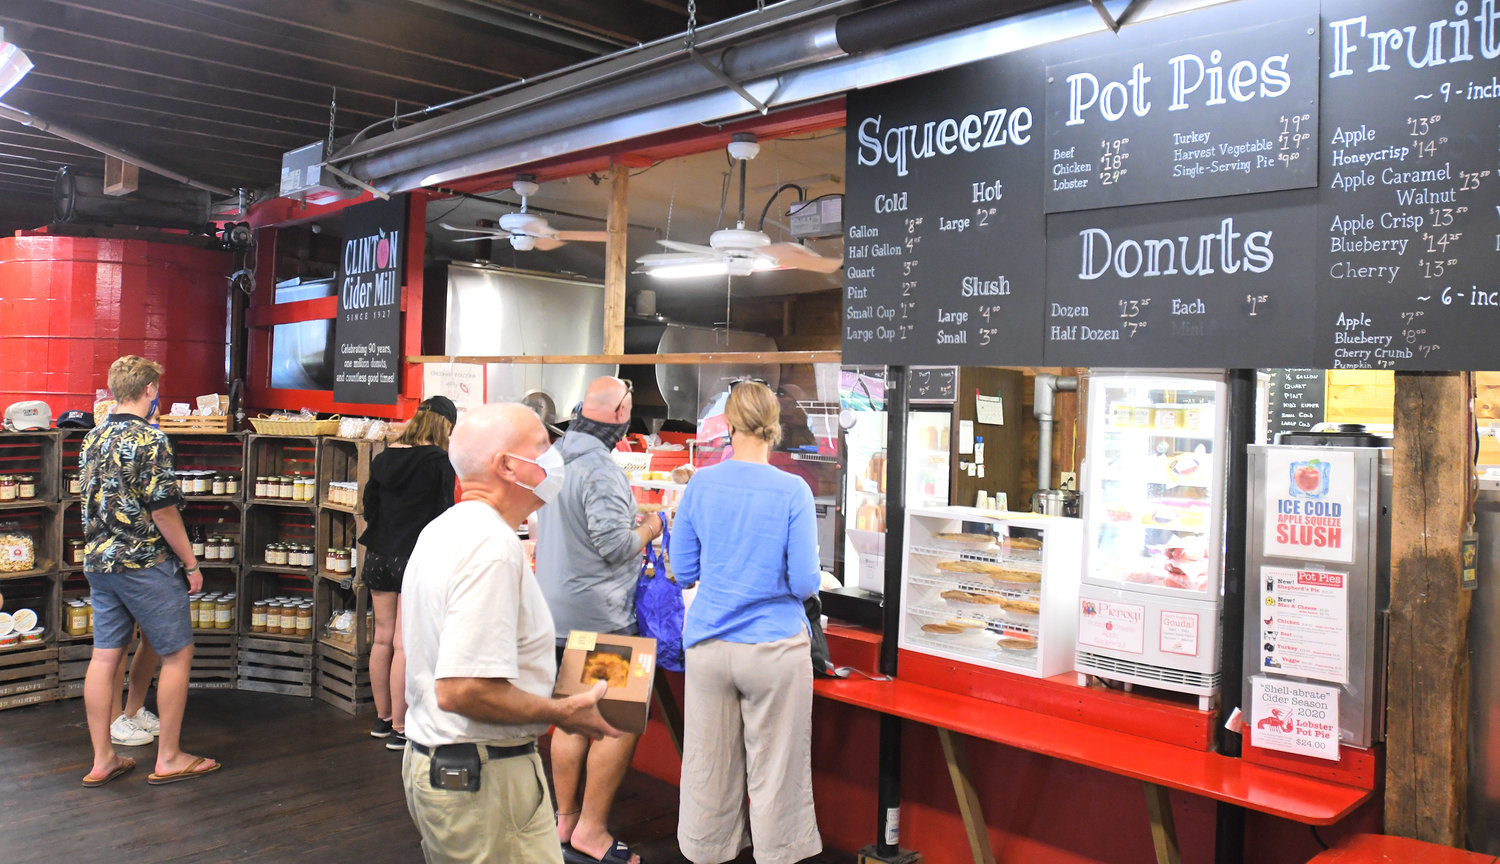 SMELLS OF AUTUMN — Customers line up at Clinton Cider Mill on Elm Street to buy cider, apples and other fall treats, like pot pies, fruit pies, soups, chili and cider doughnuts.  Hours are 10 a.m. to 6 p.m. Monday through Saturday, and from 10 a.m. to 5 p.m. Sunday.